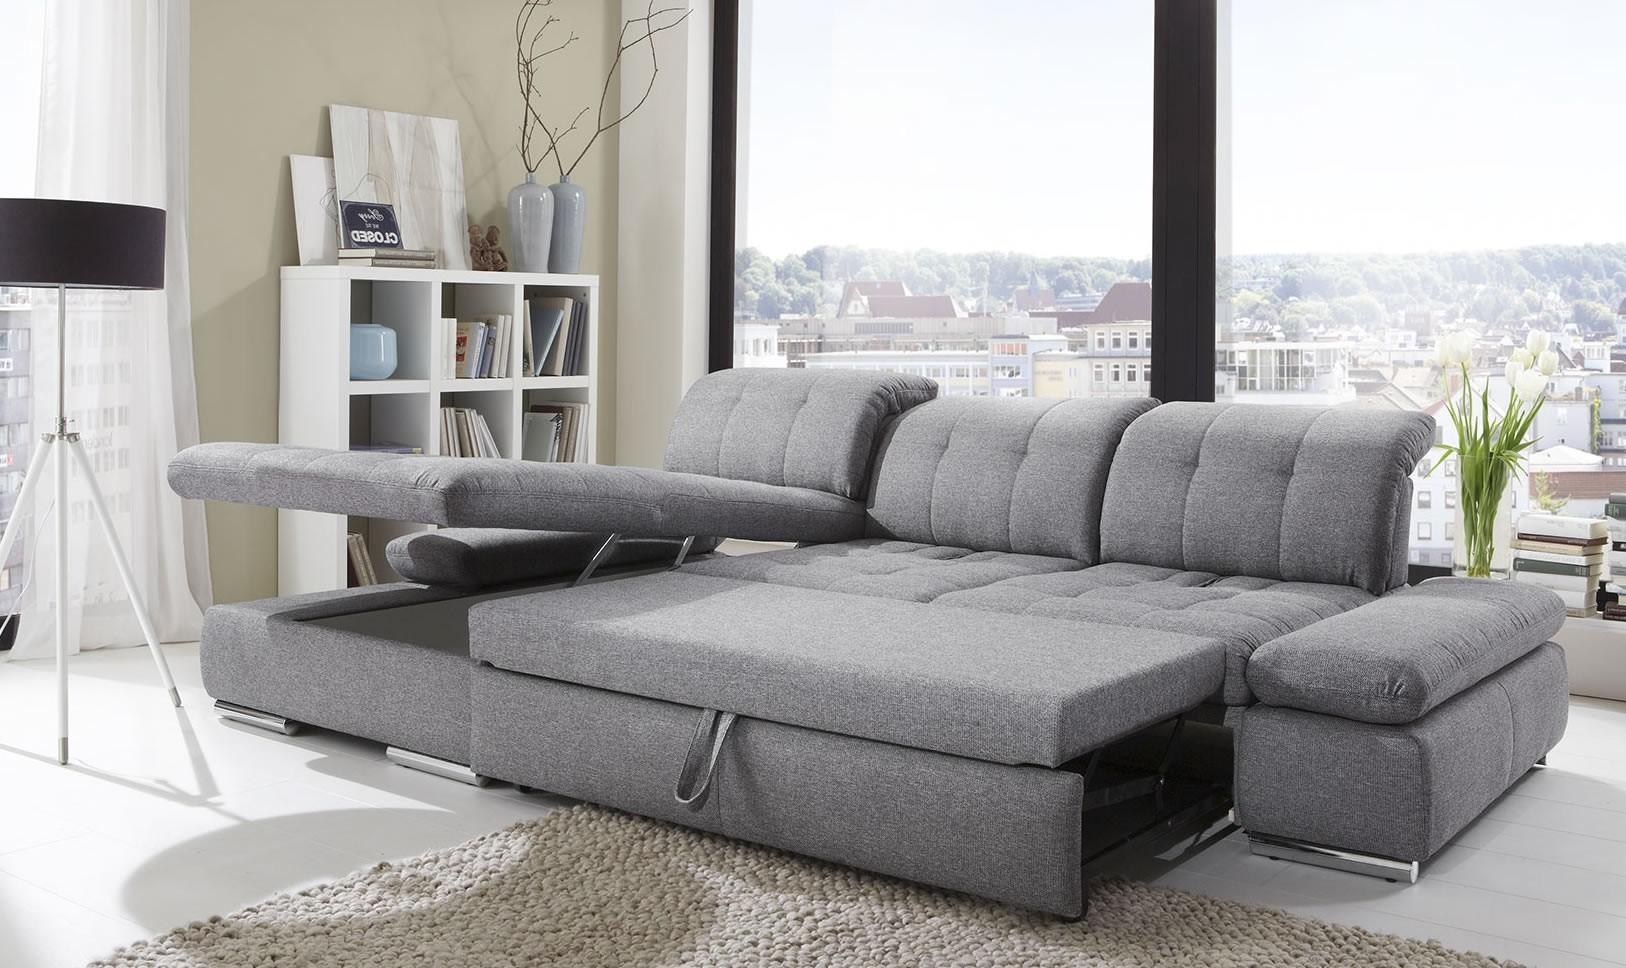 Sectional Queen Sleeper Sofa Bed | Latest Home Decor And Design Intended For Sleeper Sofas San Diego (Image 12 of 20)